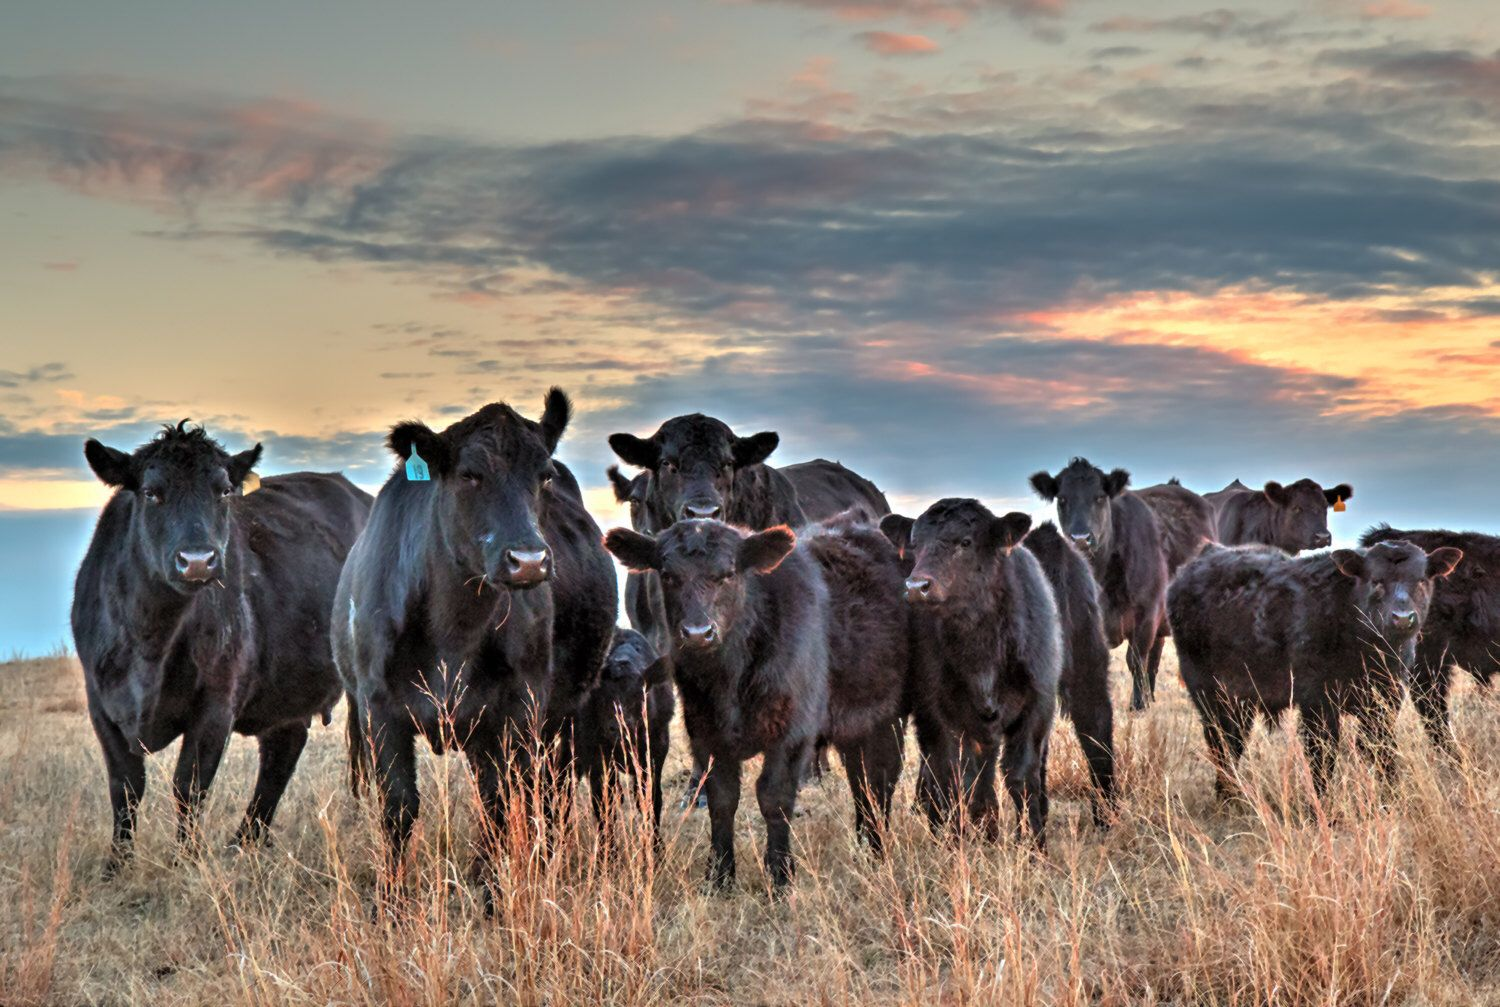 Western Decor Cow Canvas Print Or Photo Of A Herd Of Black